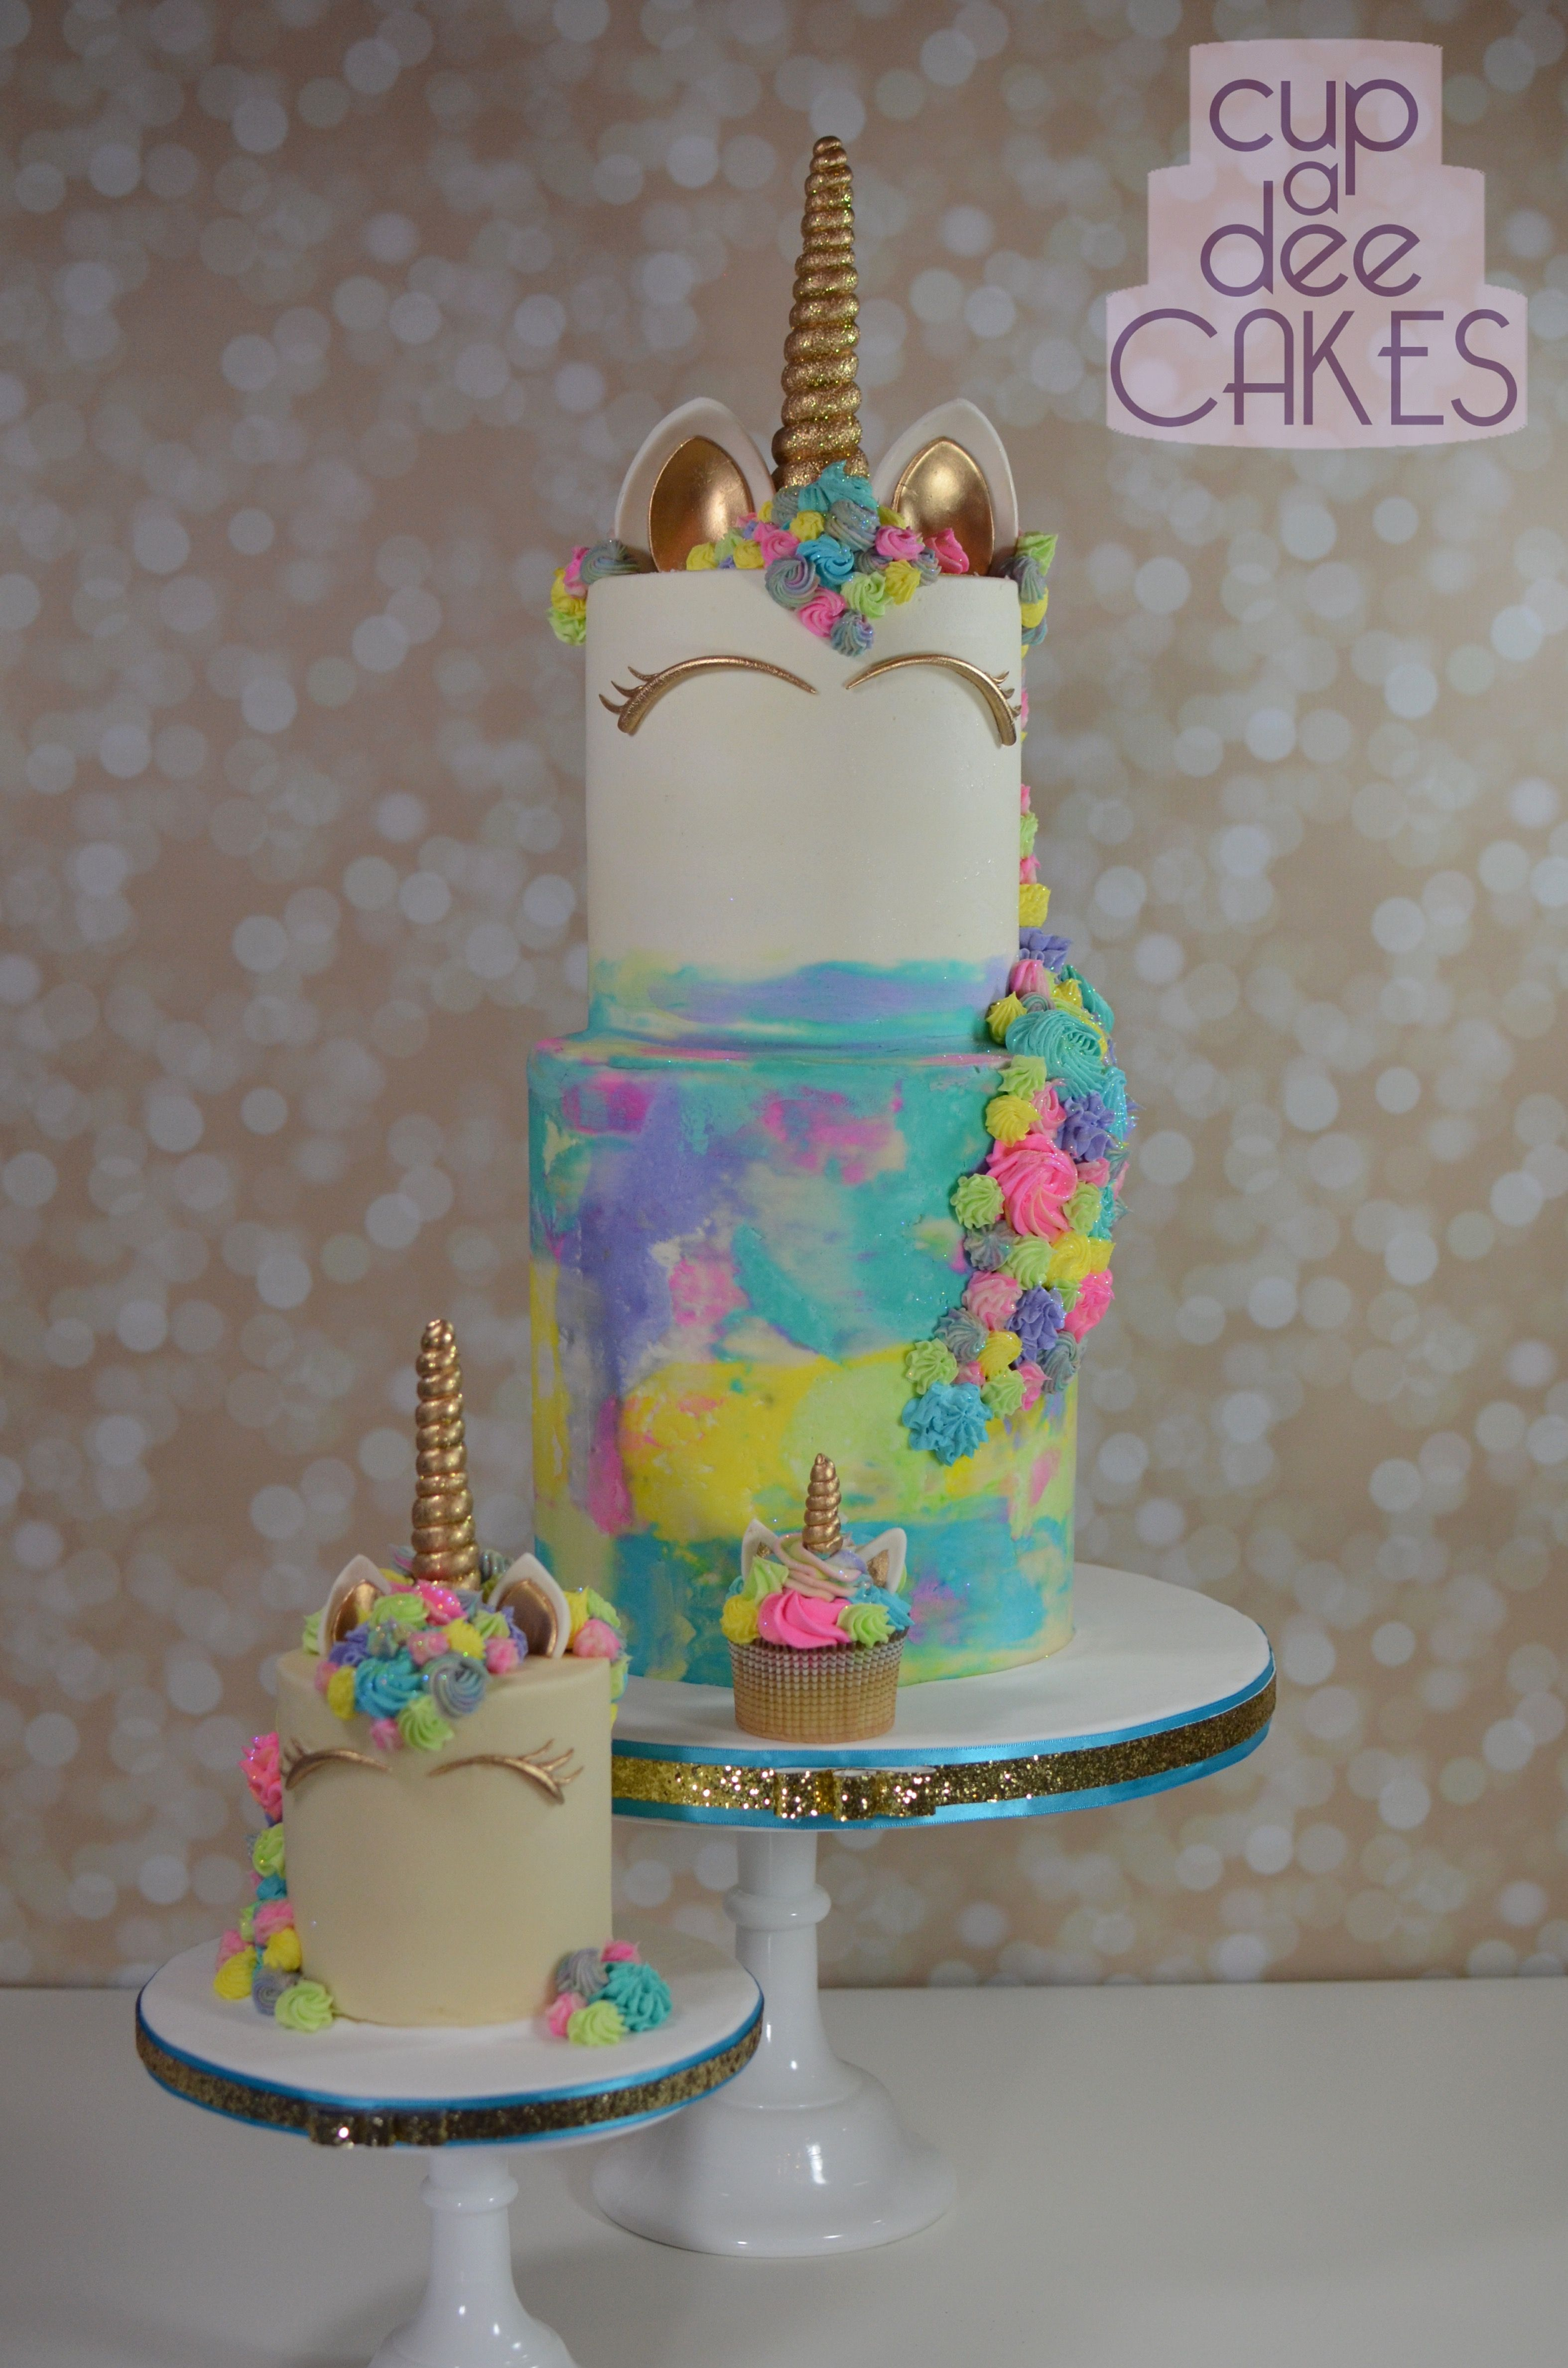 Cake Decorating Two Tier Unicorn Cake With A Baby Cake